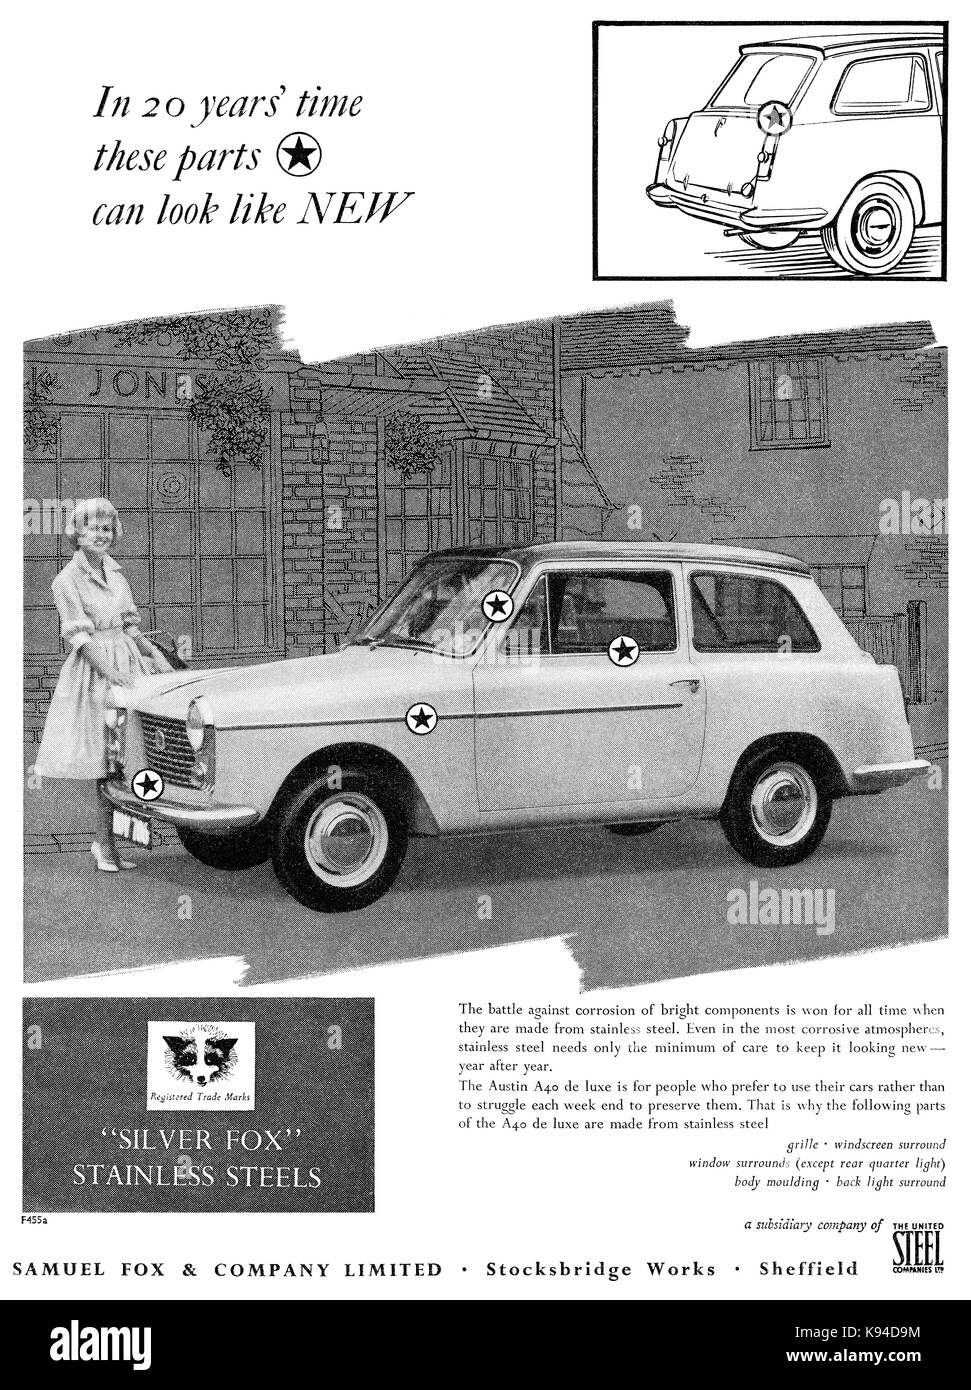 1959 British advertisement for stainless steel by Samuel Fox & Company, featuring the Austin A40 motor car. - Stock Image